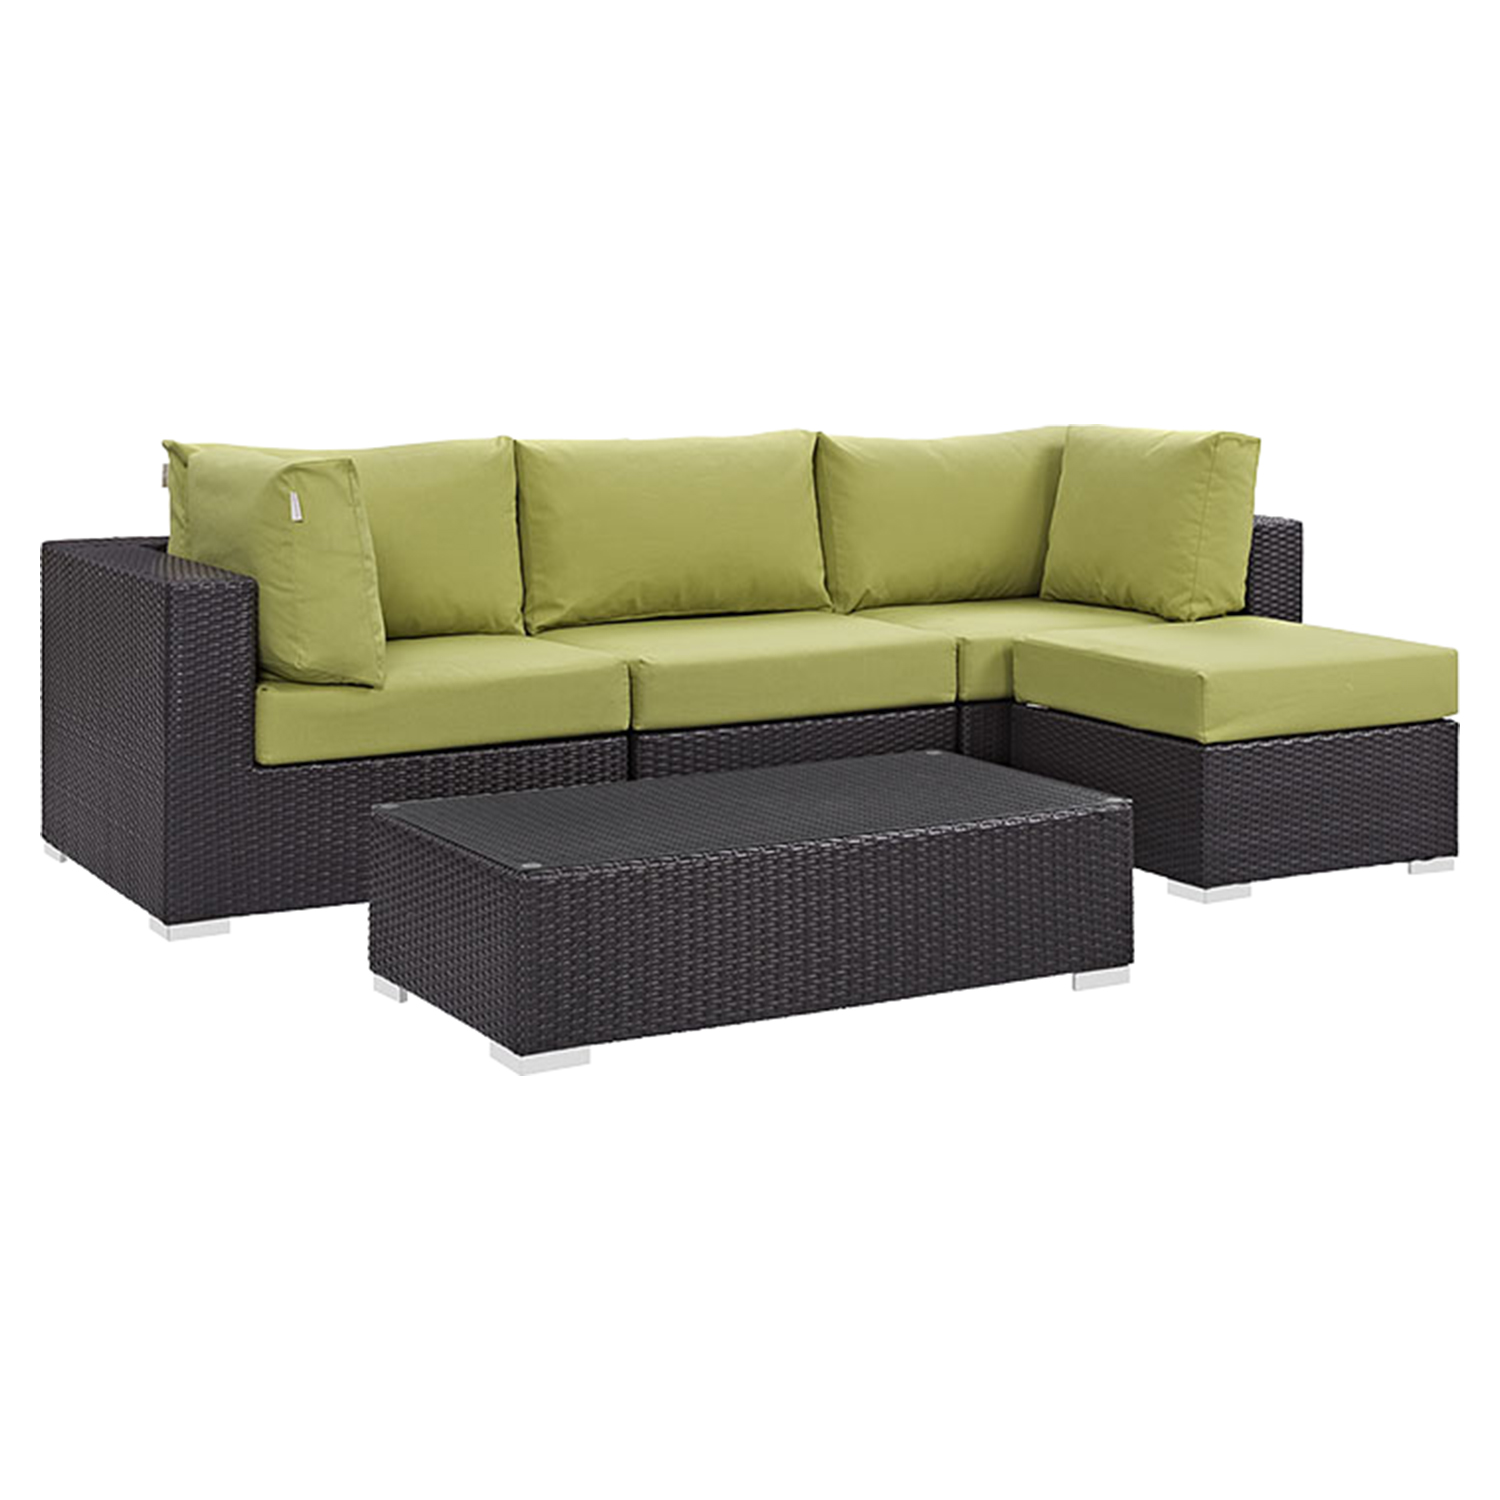 Convene 5 Pieces Outdoor Patio Sectional Set - Square Arm - EEI-2172-EXP-SET